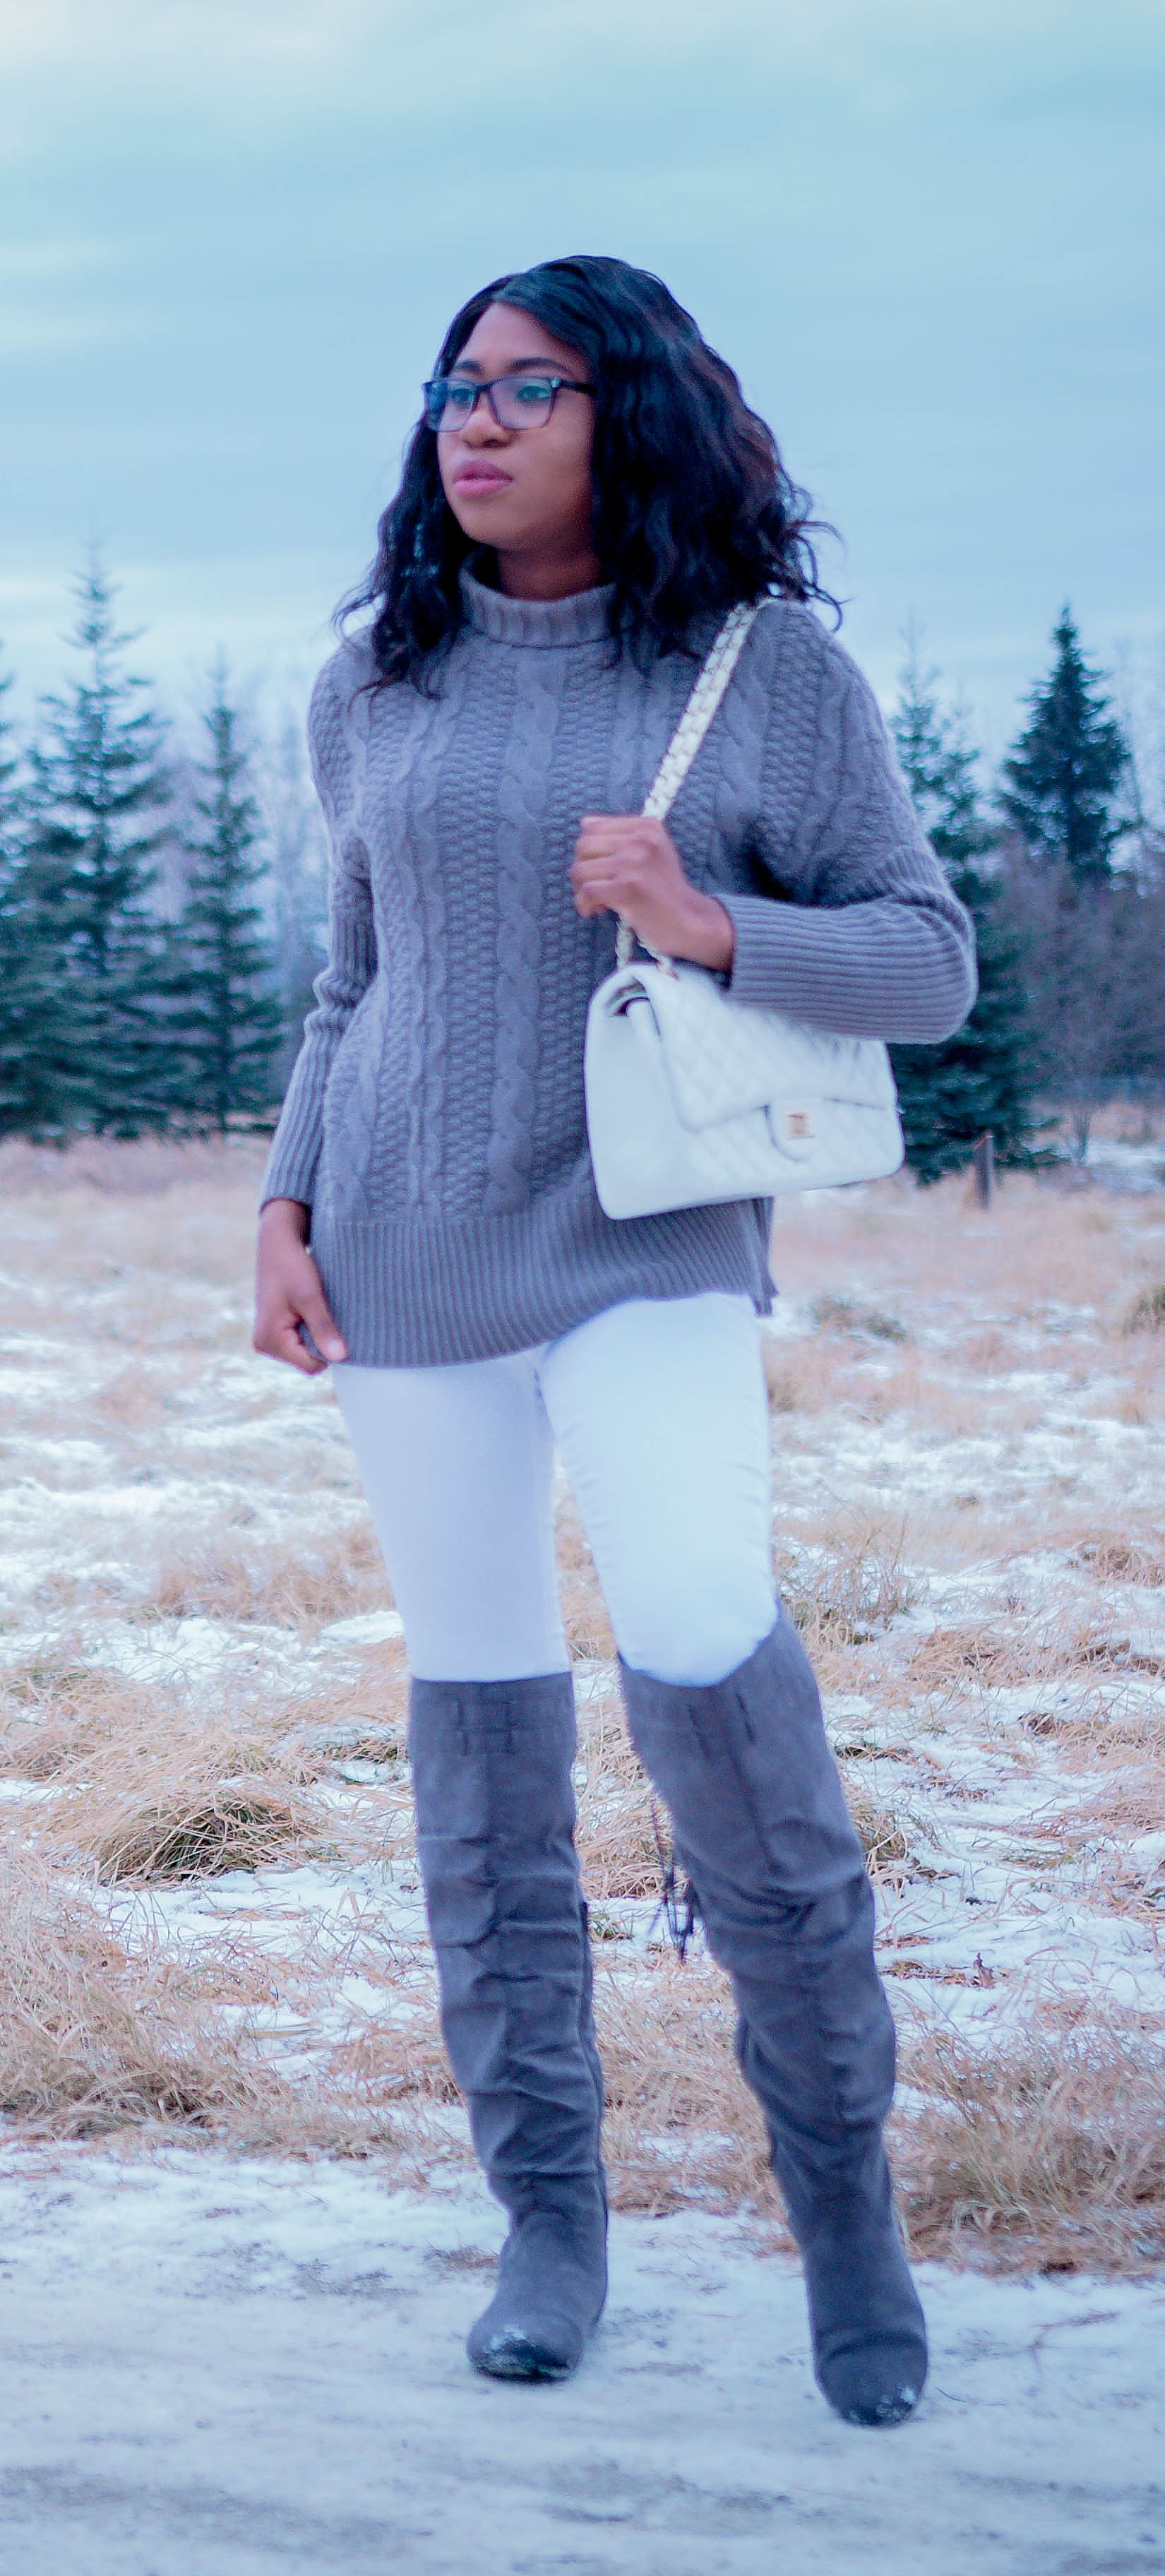 Cozy and Stylish Oversized Knit Sweater | Warm, Knitwear and ...